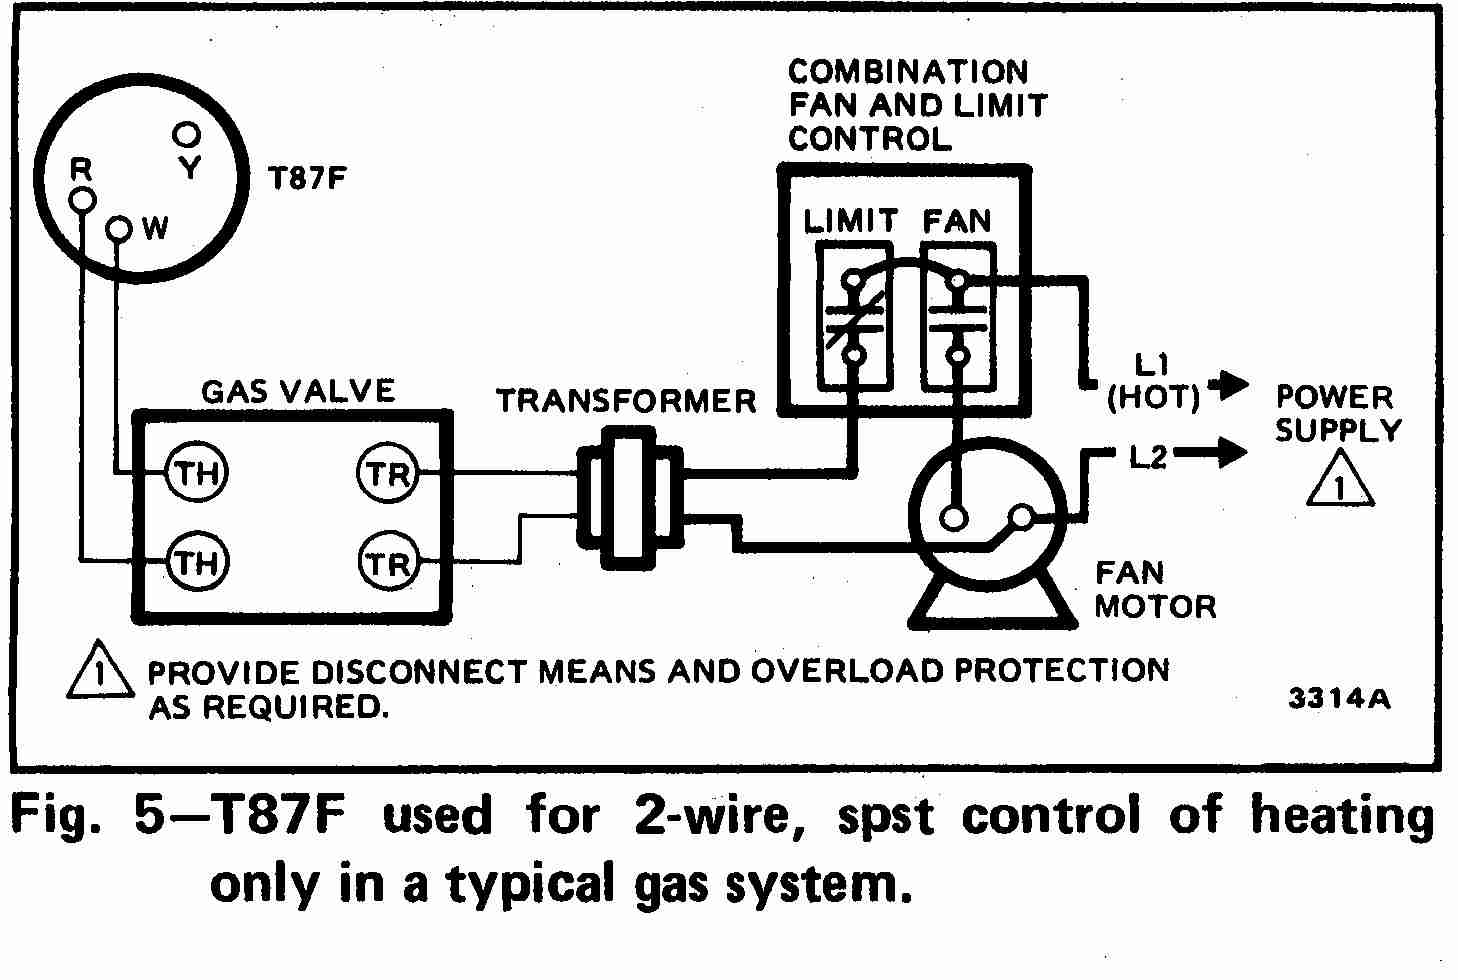 TT_T87F_0002_2Wg_DJF room thermostat wiring diagrams for hvac systems honeywell gas valve wiring diagram at cos-gaming.co